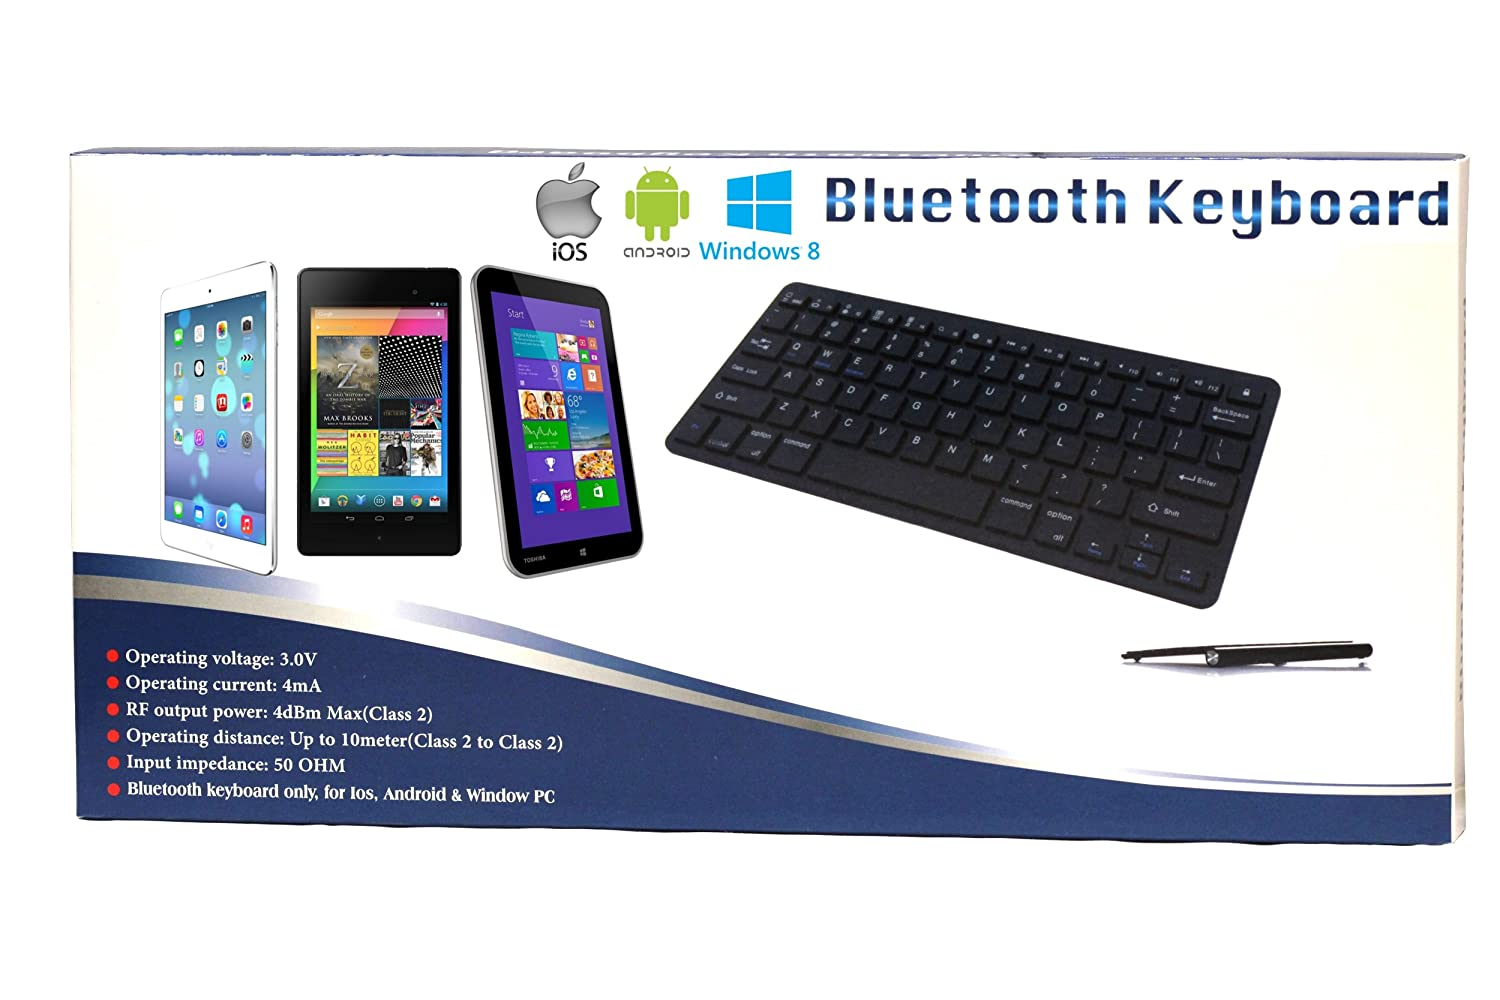 Navitech Black Wireless Multi OS Keyboard Compatible with All Android//Windows /& iOS Tablets Including The Acer Iconia One 10 B3-A50 Acer Iconia One 10 B3-A50FHD